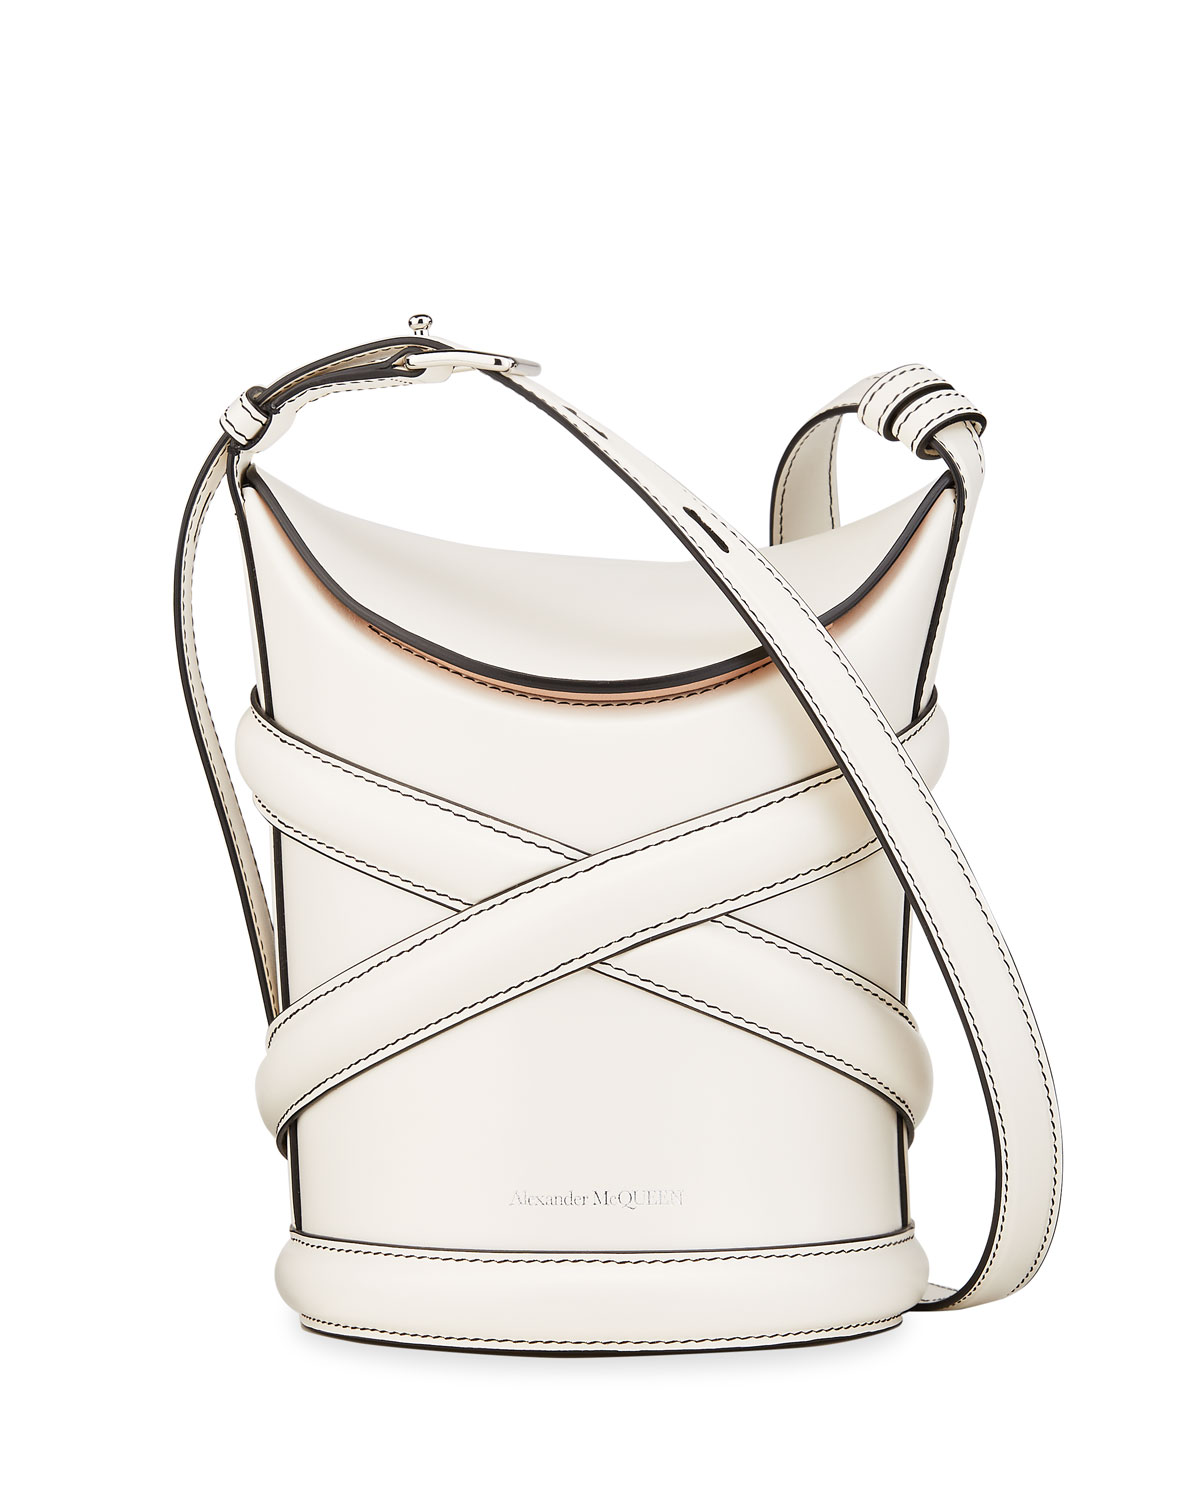 Alexander Mcqueen Leathers THE CURVE SMALL HOBO BUCKET BAG